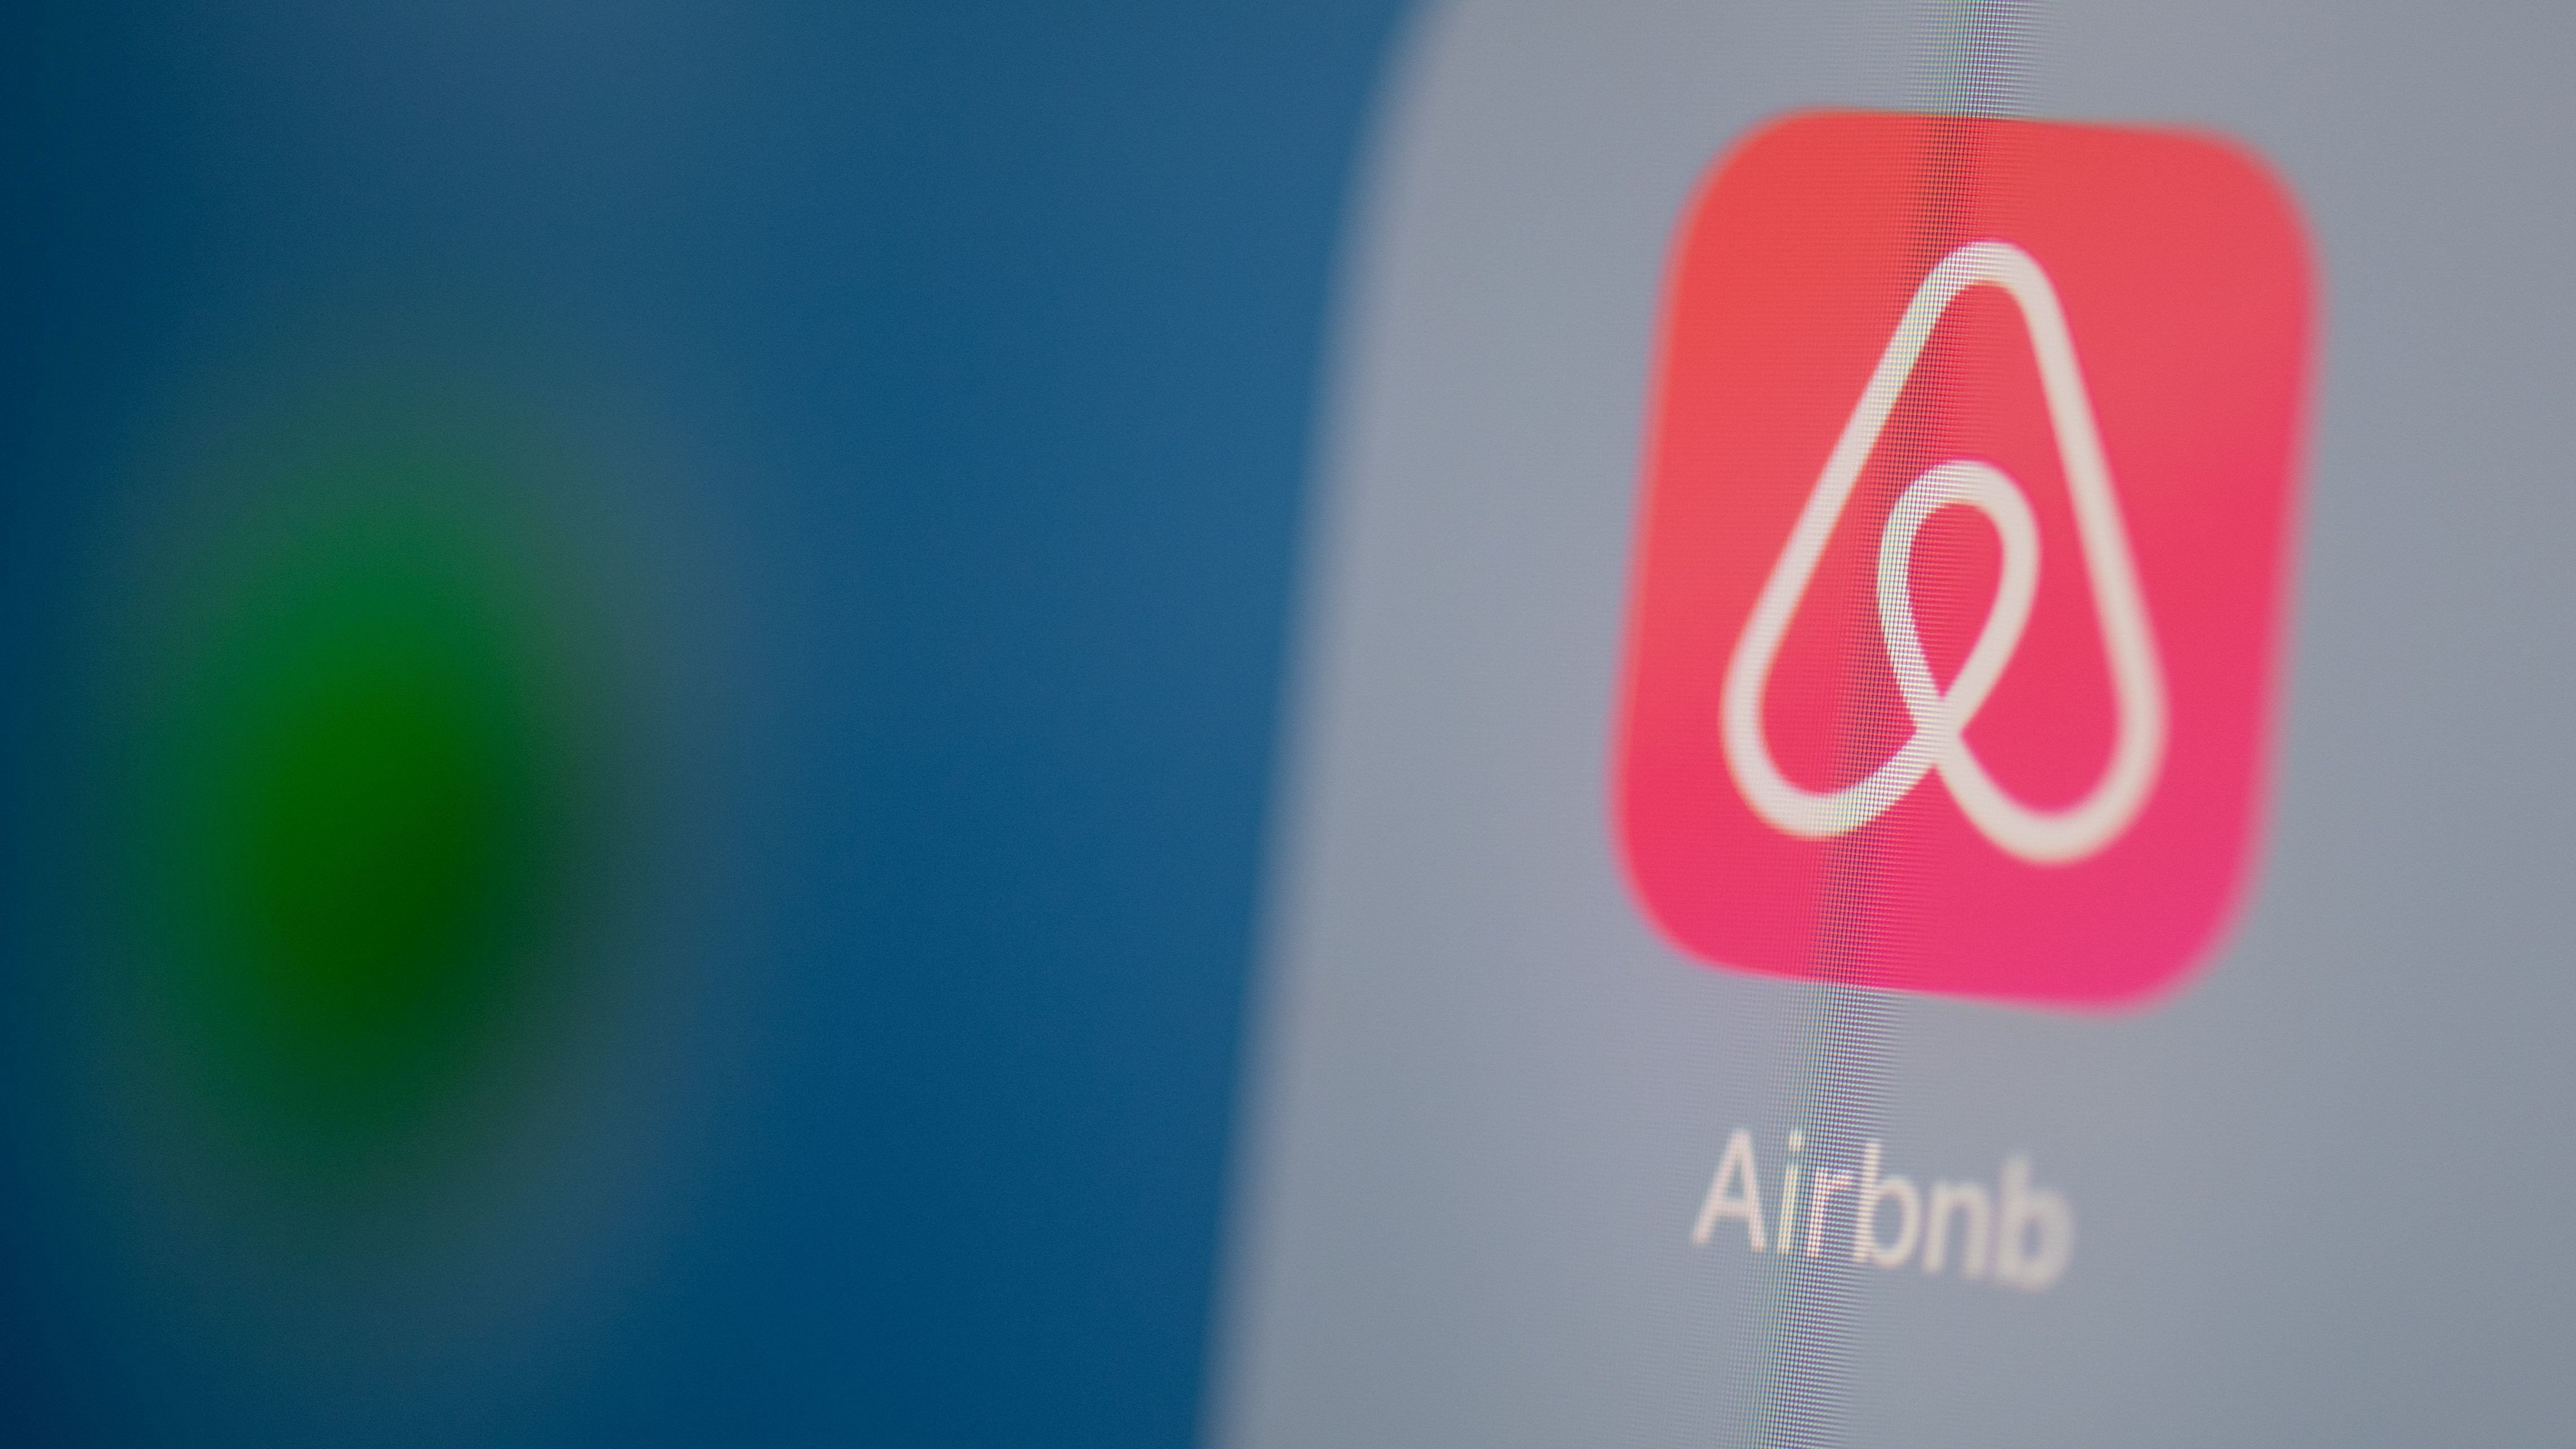 Airbnb offers temporary free accommodation to Afghan refugees